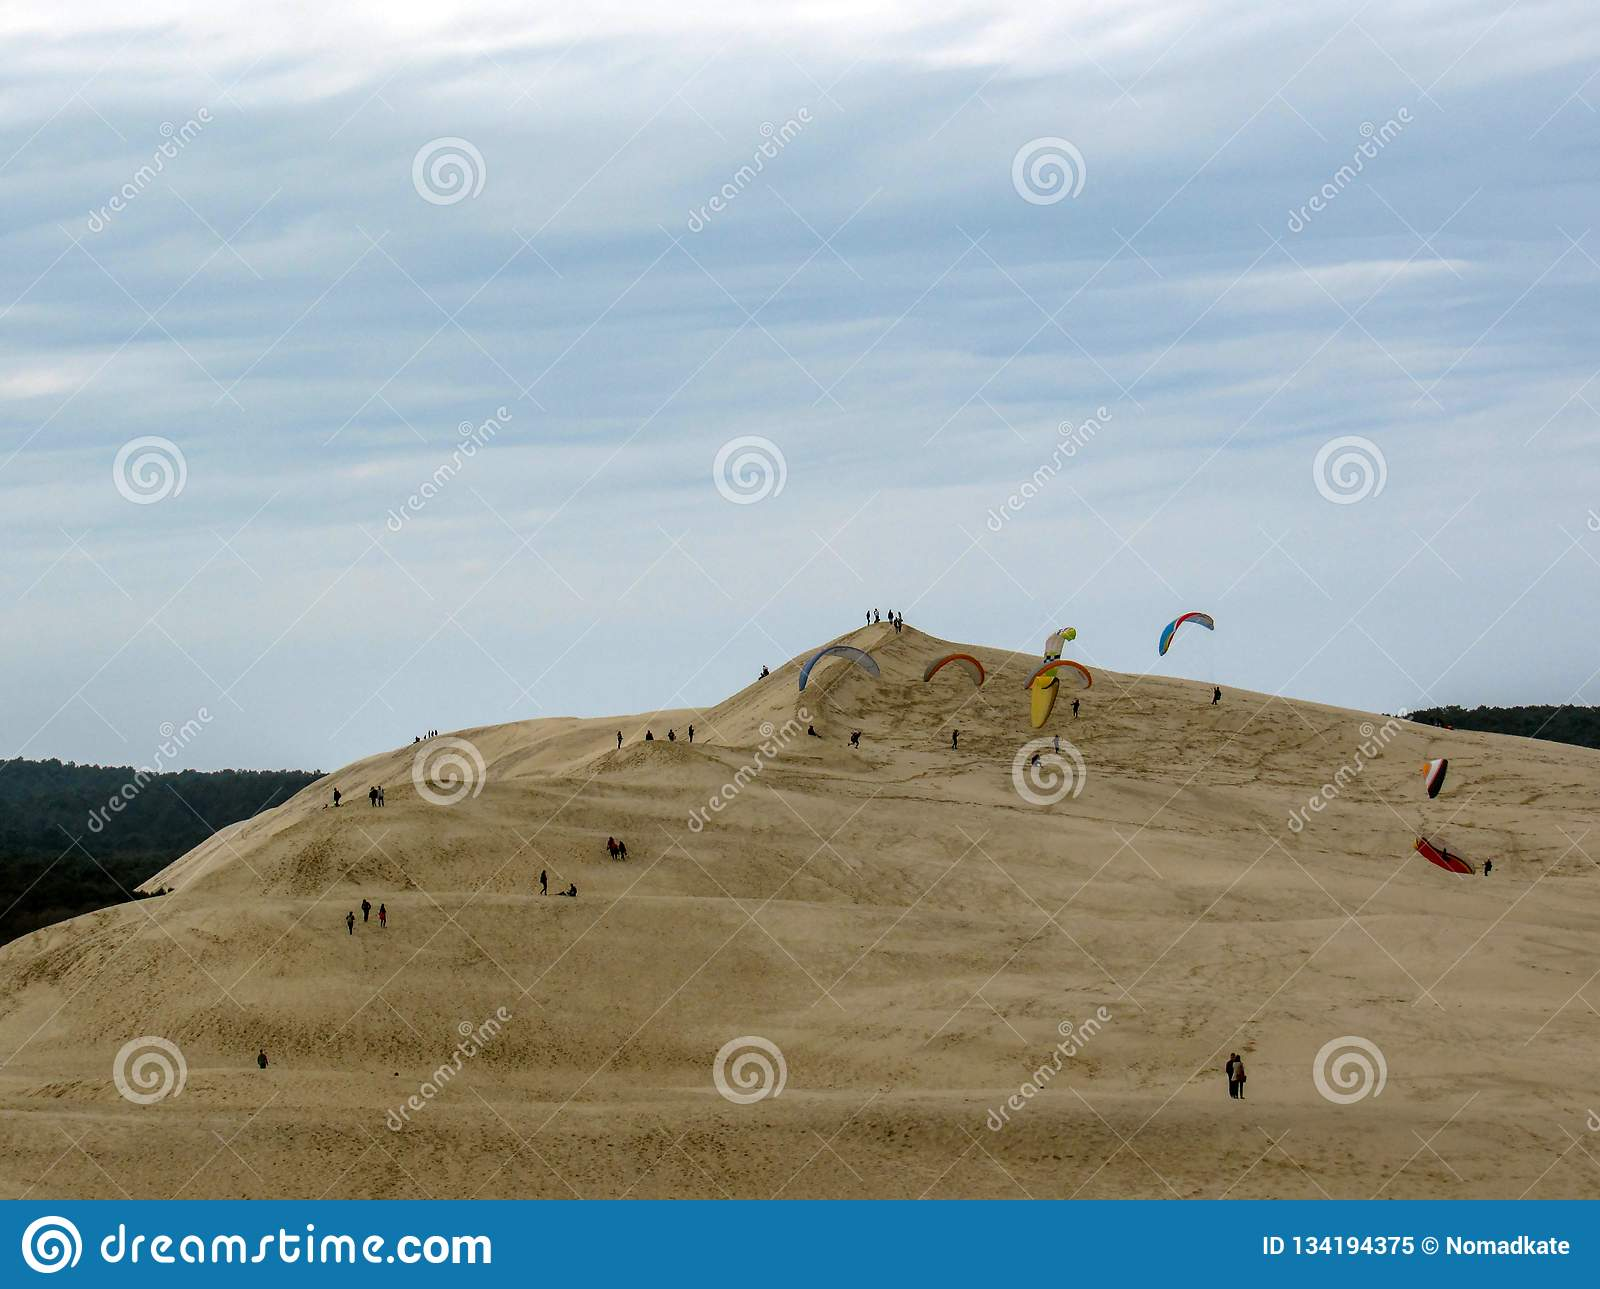 dune of pilat view of the arcachon bay and the tallest sand dune in europe arcachon bay atlantic ocean aquitaine famous tourist destination in france